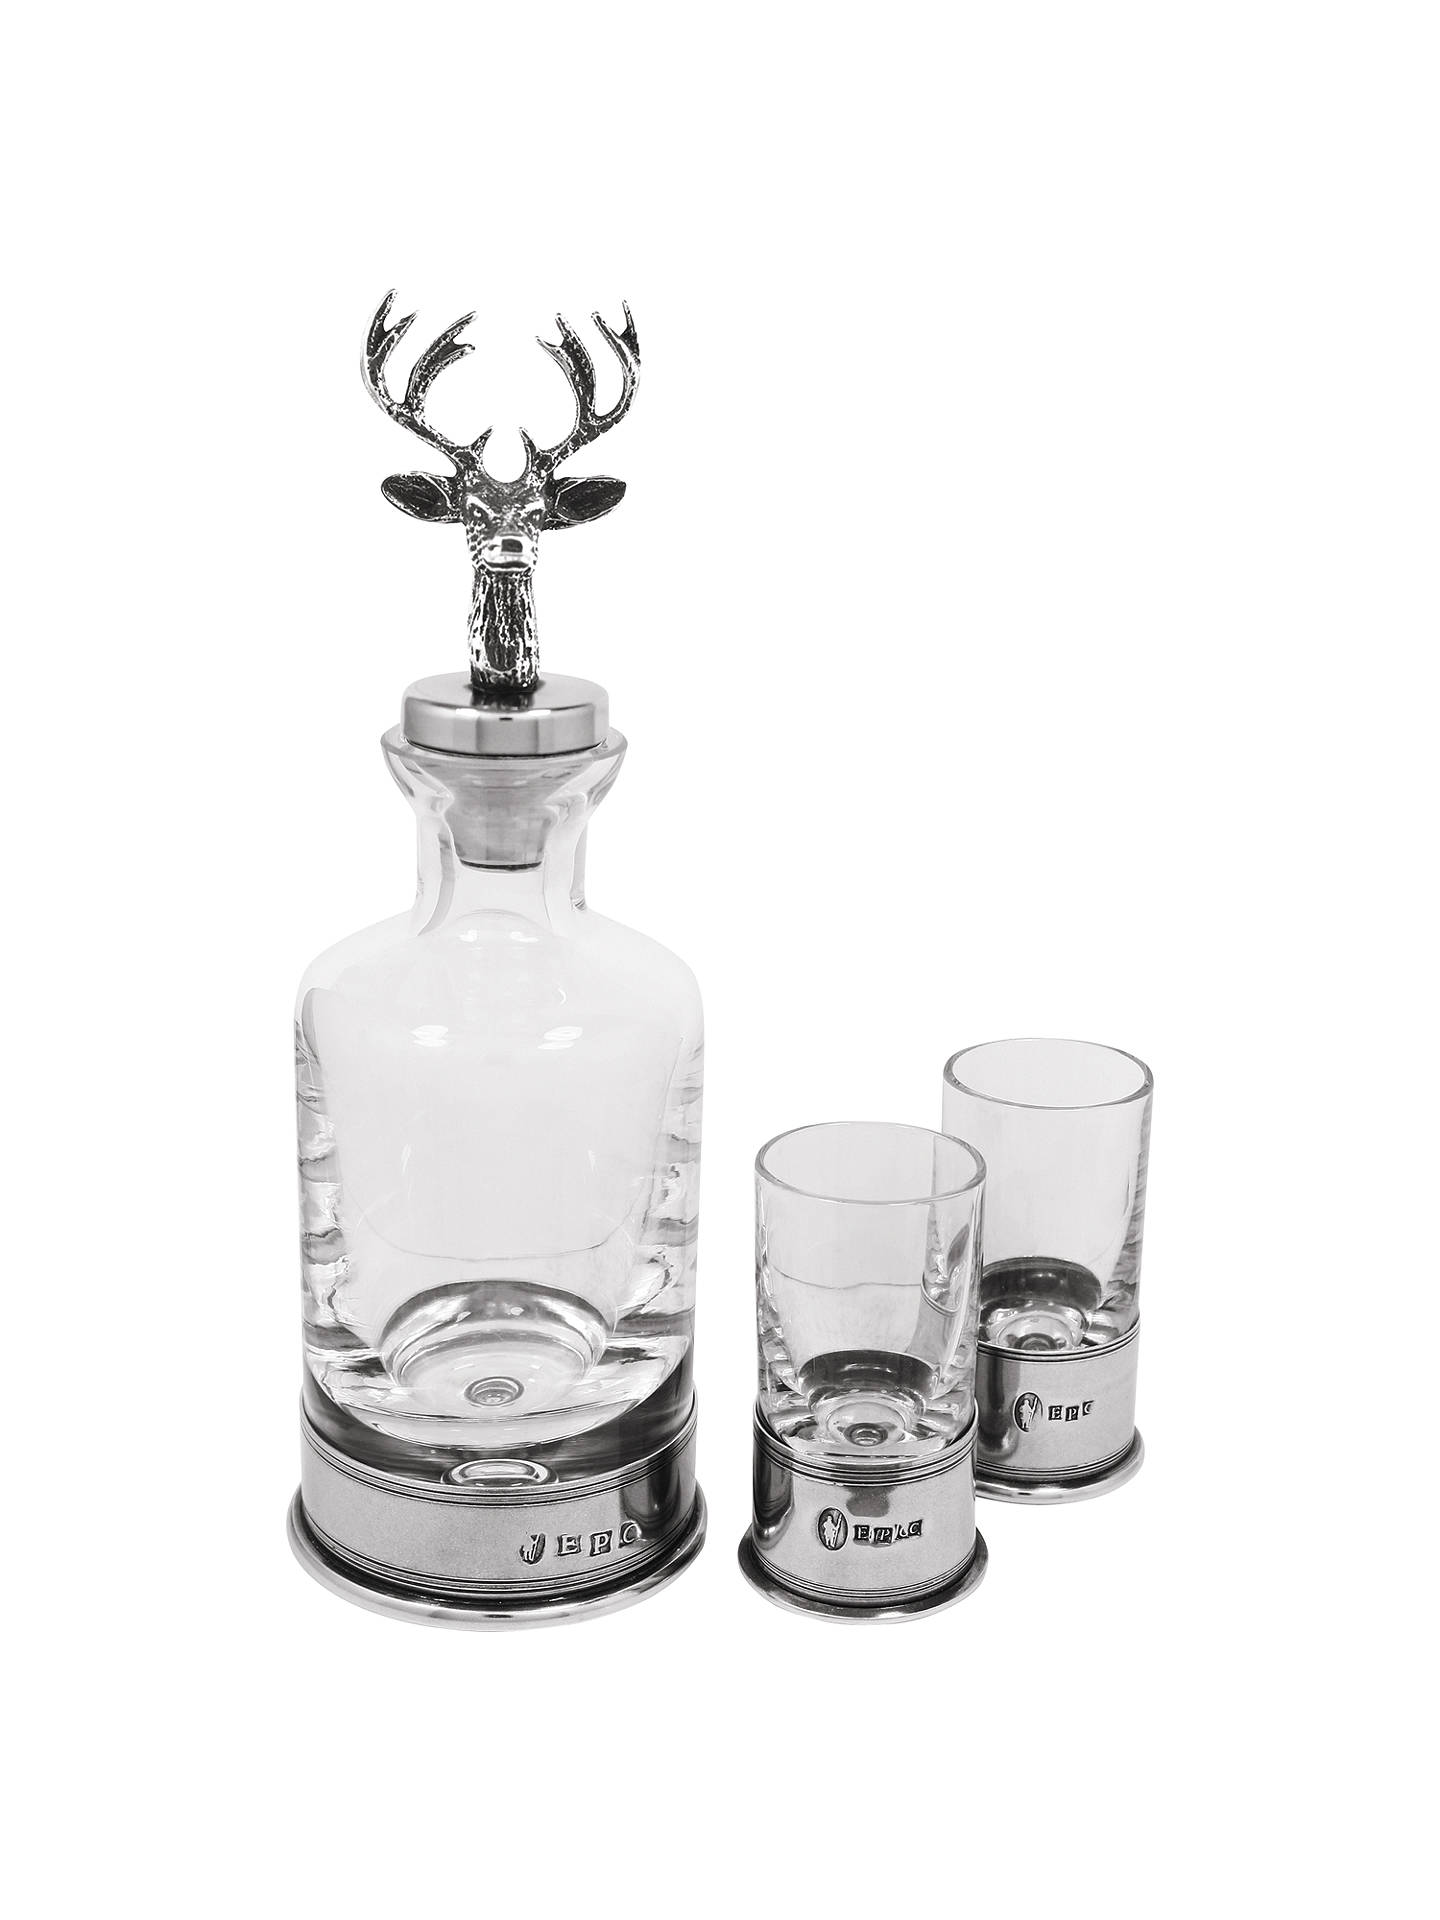 Buy English Pewter Company Stag Mini Decanter & Glass Set Online at johnlewis.com